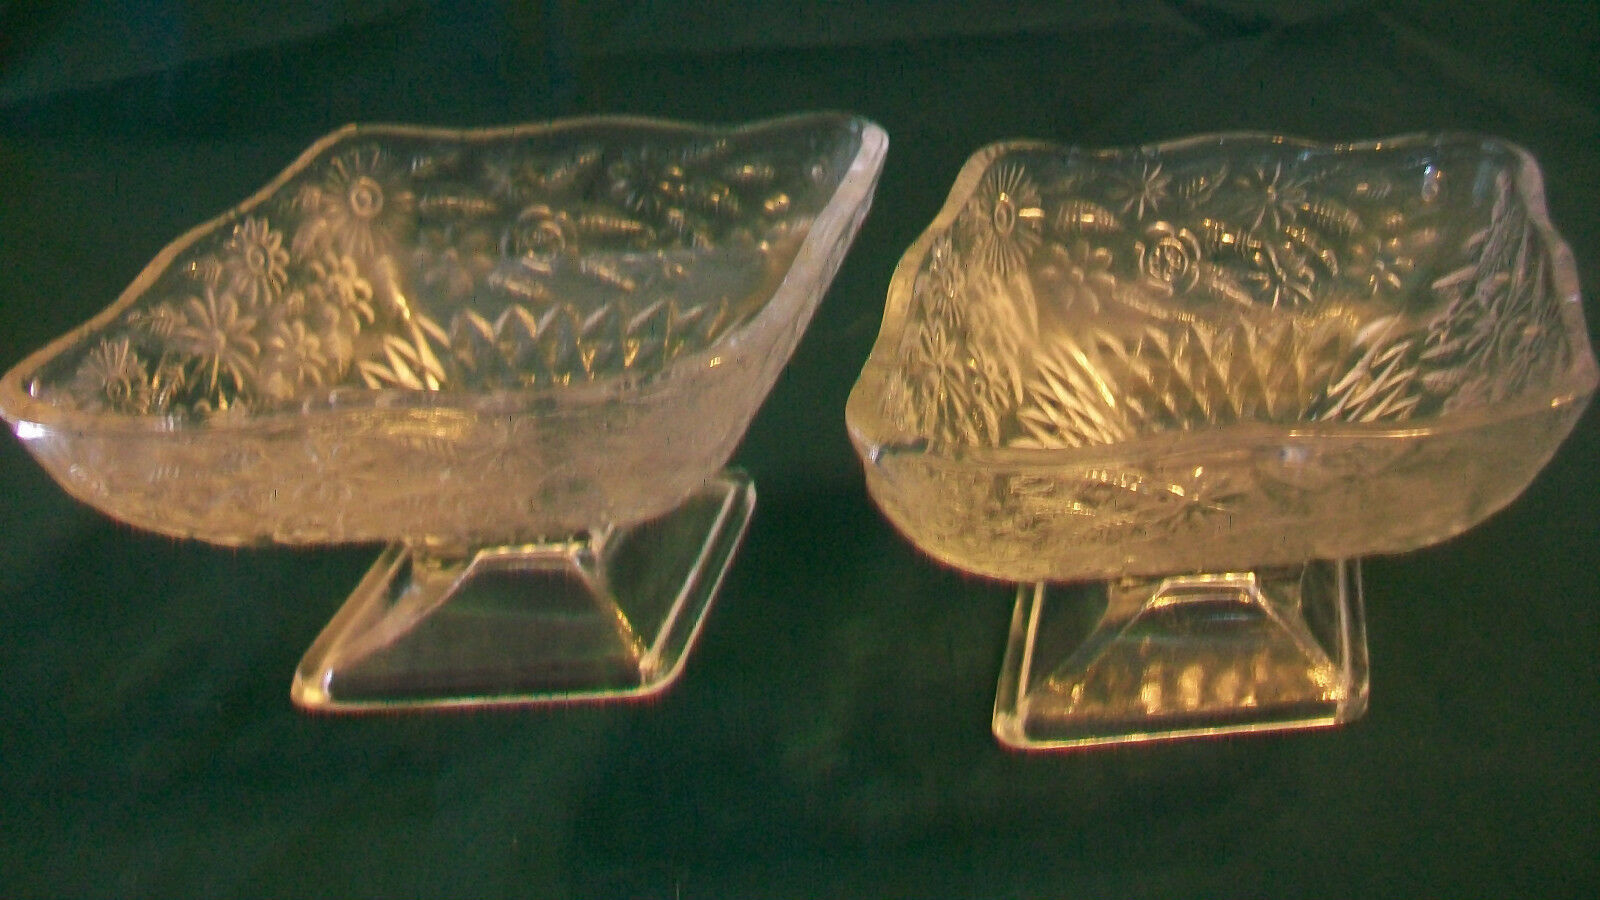 TWO VINTAGE DIAMOND SHAPE INDIANA GLASS COMPOTE DISHES, PINEAPPLE FLORAL PATTERN - $37.13